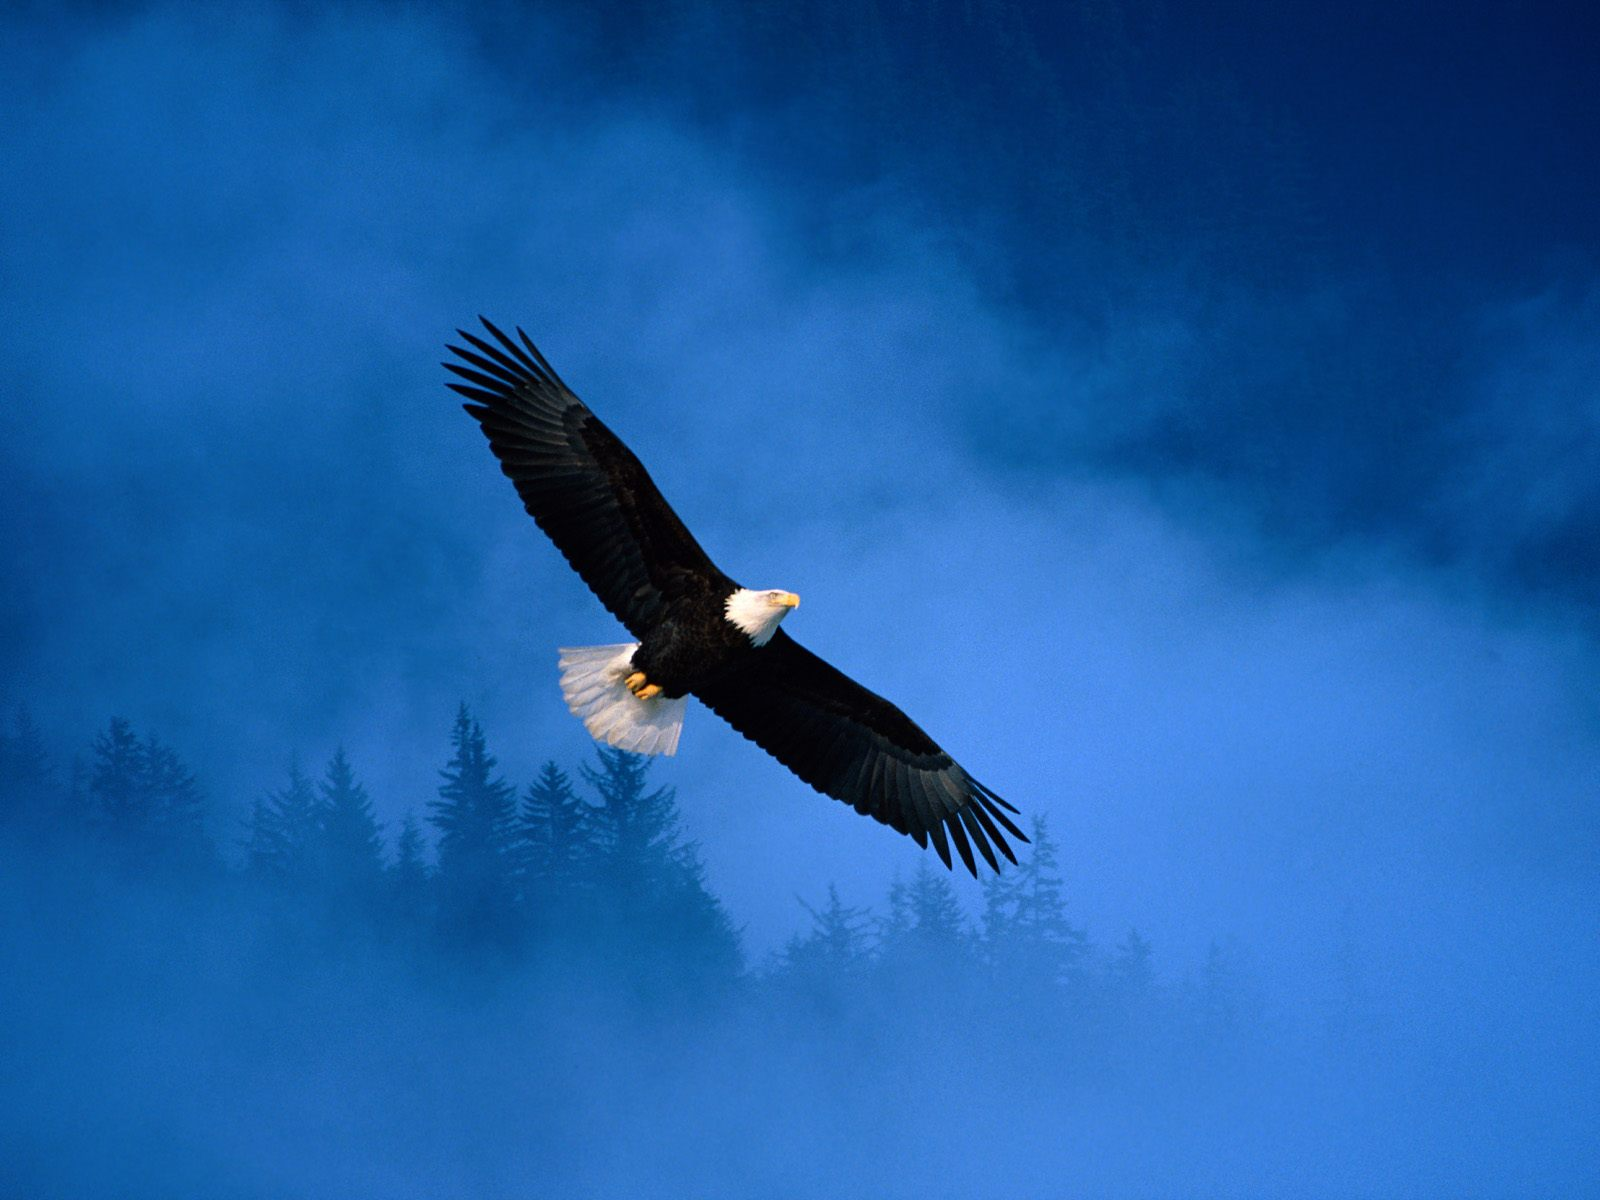 Flight of Freedom Bald Eagle Wallpapers HD Wallpapers 1600x1200